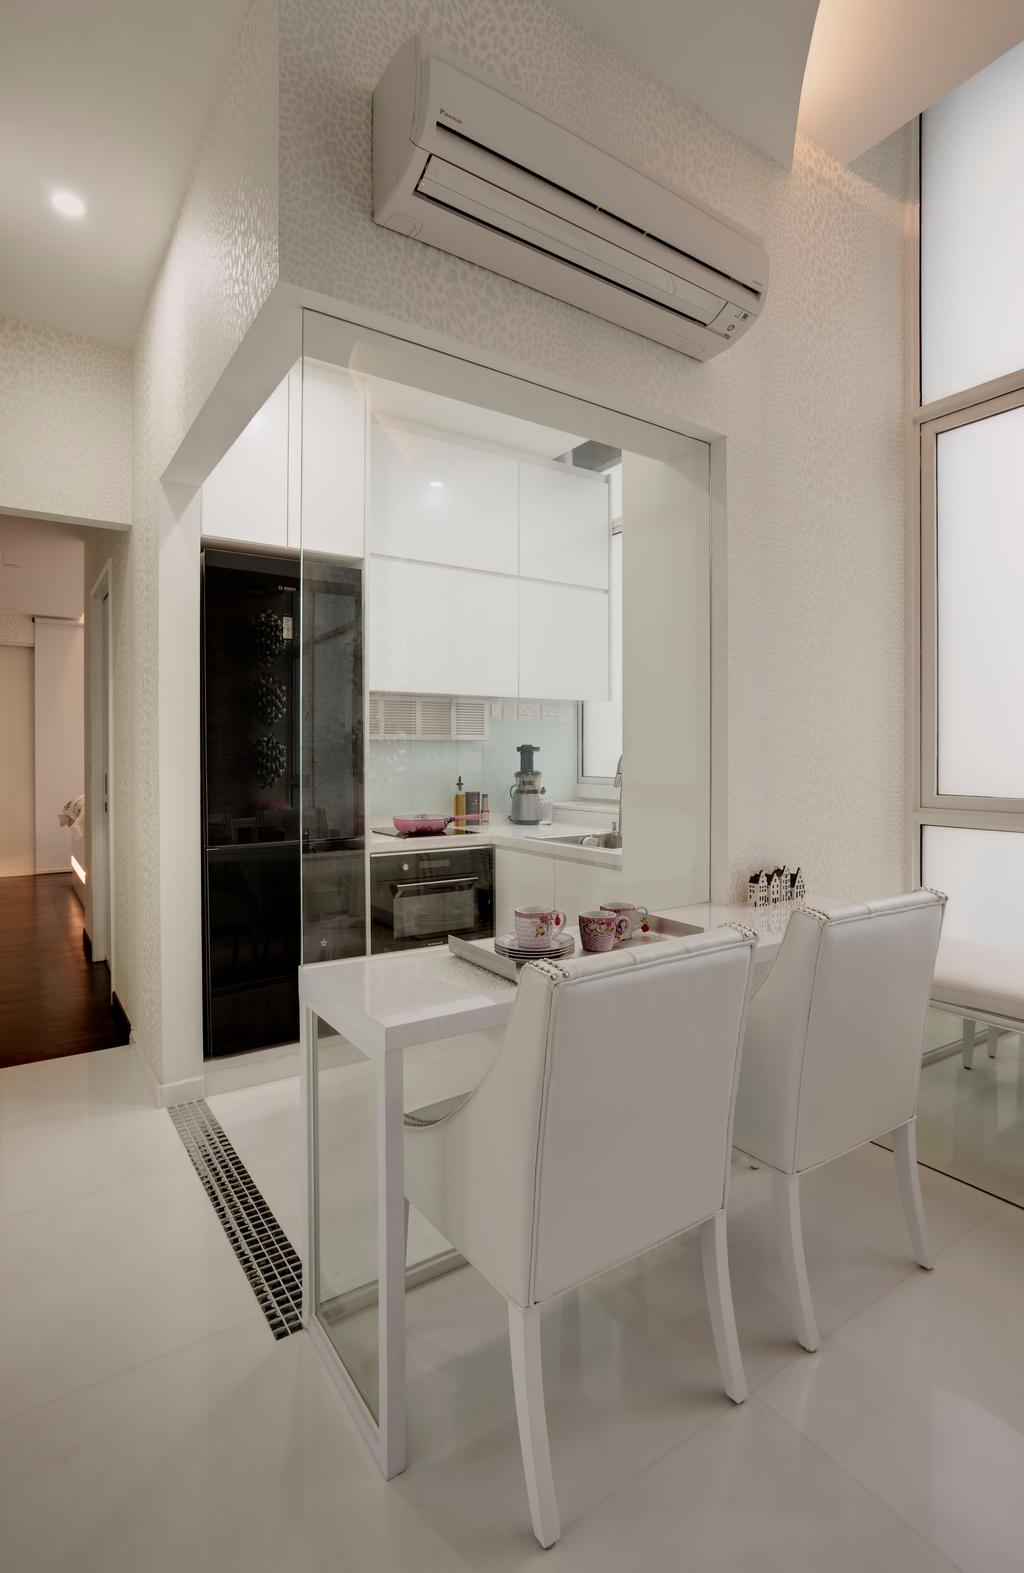 Modern, Condo, Dining Room, Casa Fortuna, Interior Designer, Space Atelier, Dining Table, Table, Chair, White, Glass Wall, Wallpaper, Safari, Cabinet, Black, Marble Tile, Marble Tiles, Appliance, Electrical Device, Oven, Sink